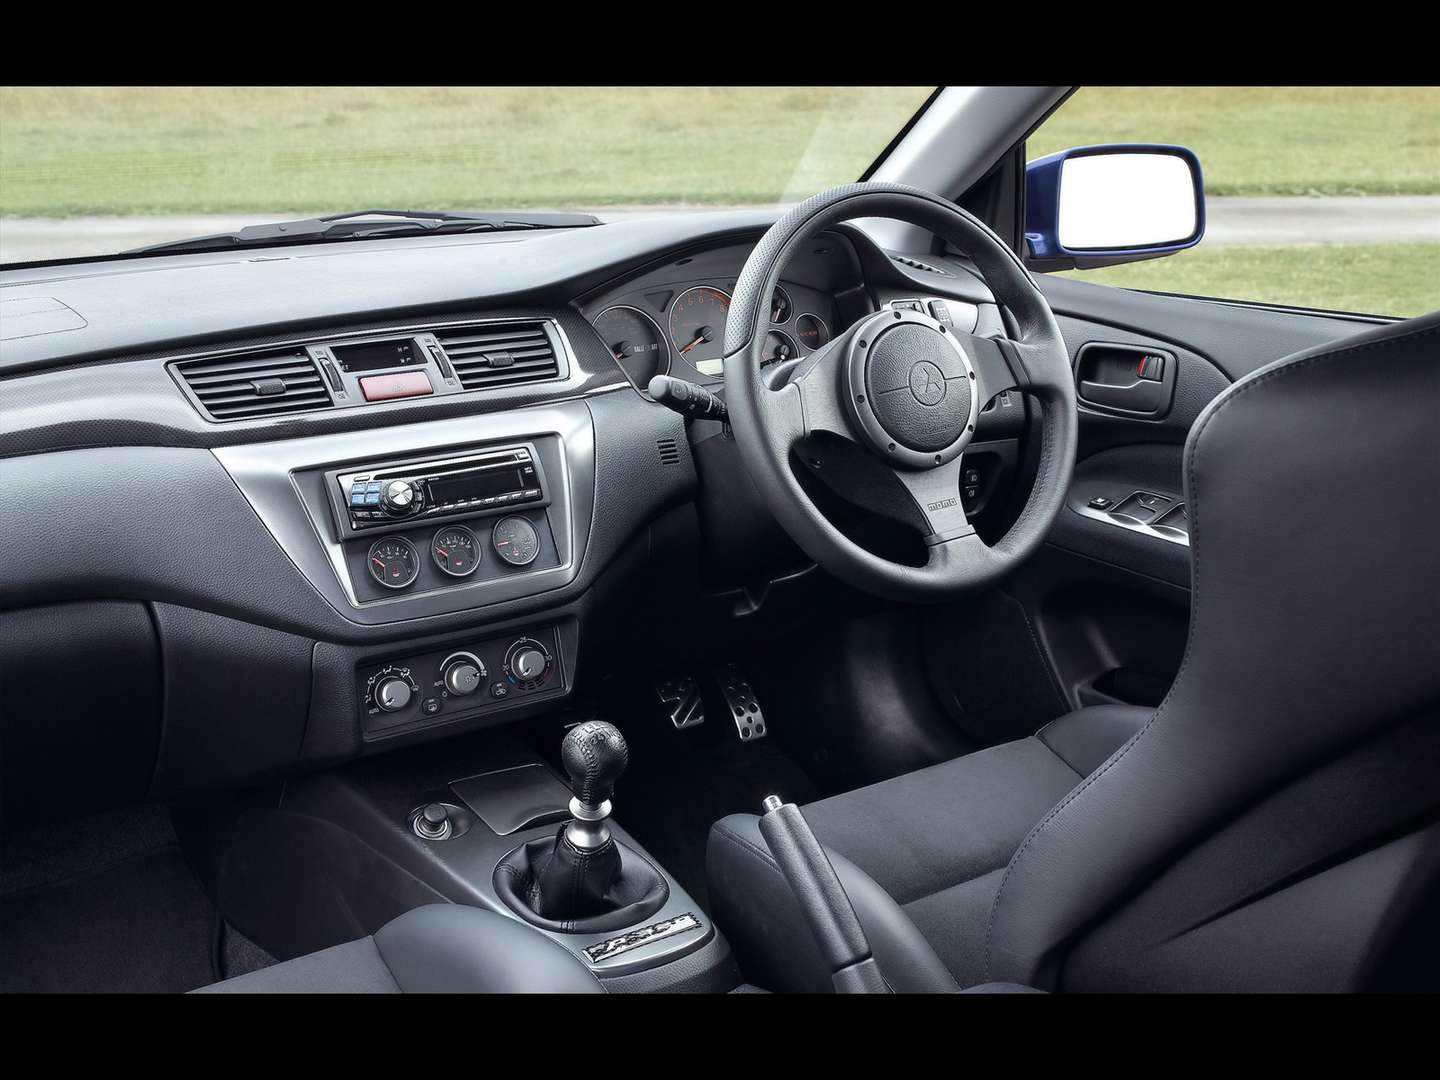 Mitsubishi announces the competitive price of the Lancer Evolution as expected